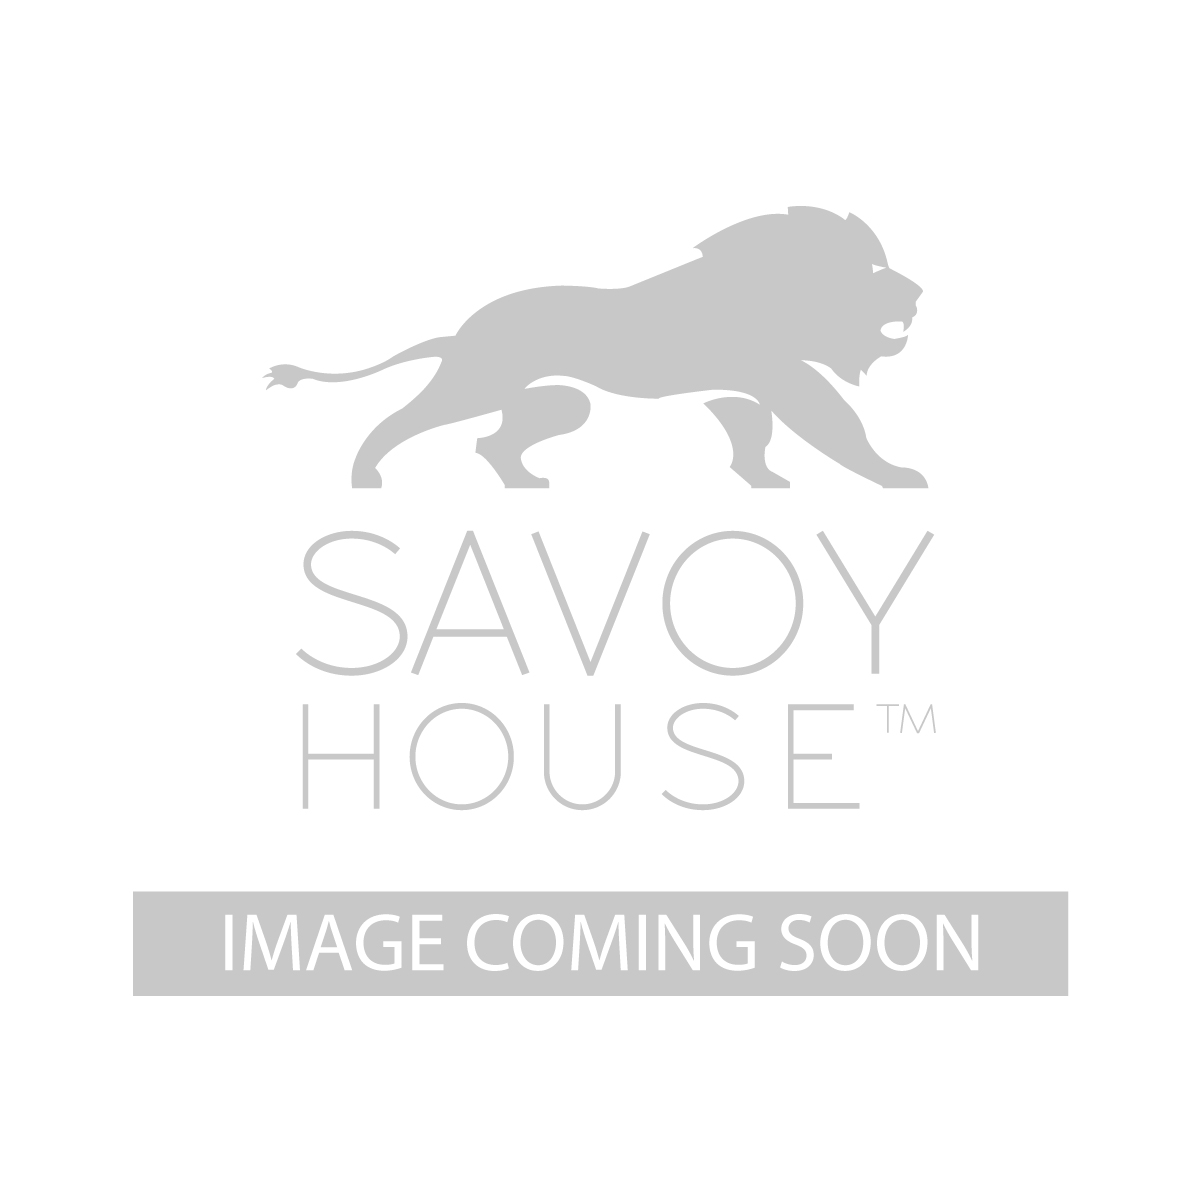 56 180 5WA 13 Phoebe 56 inch Ceiling Fan by Savoy House